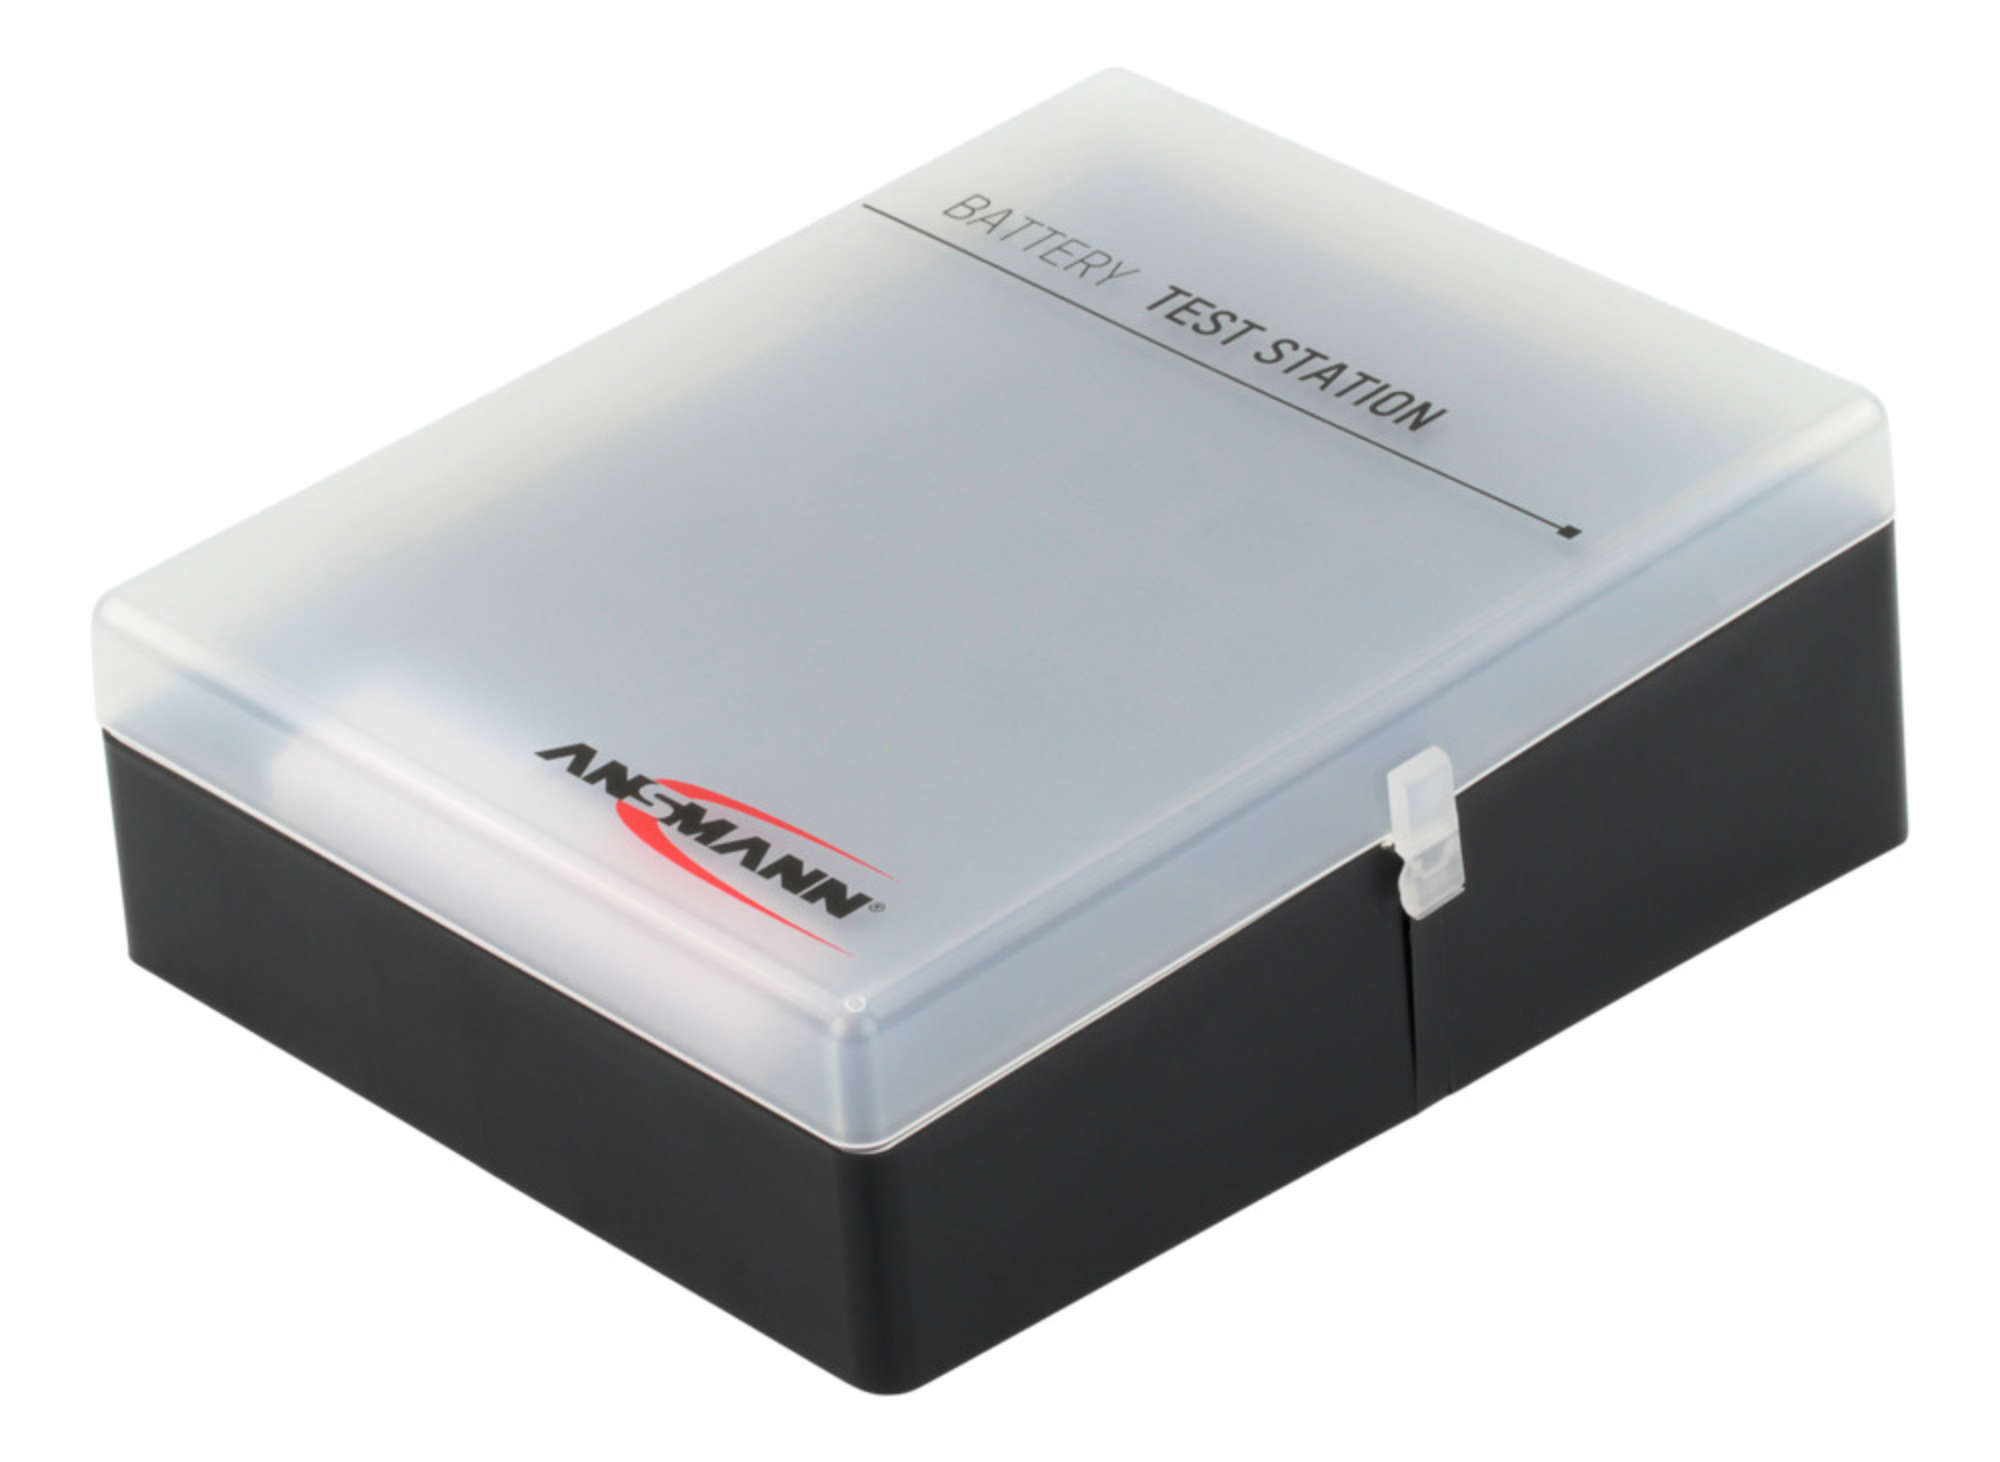 Batteriebox 48 mit Batterie-Tester